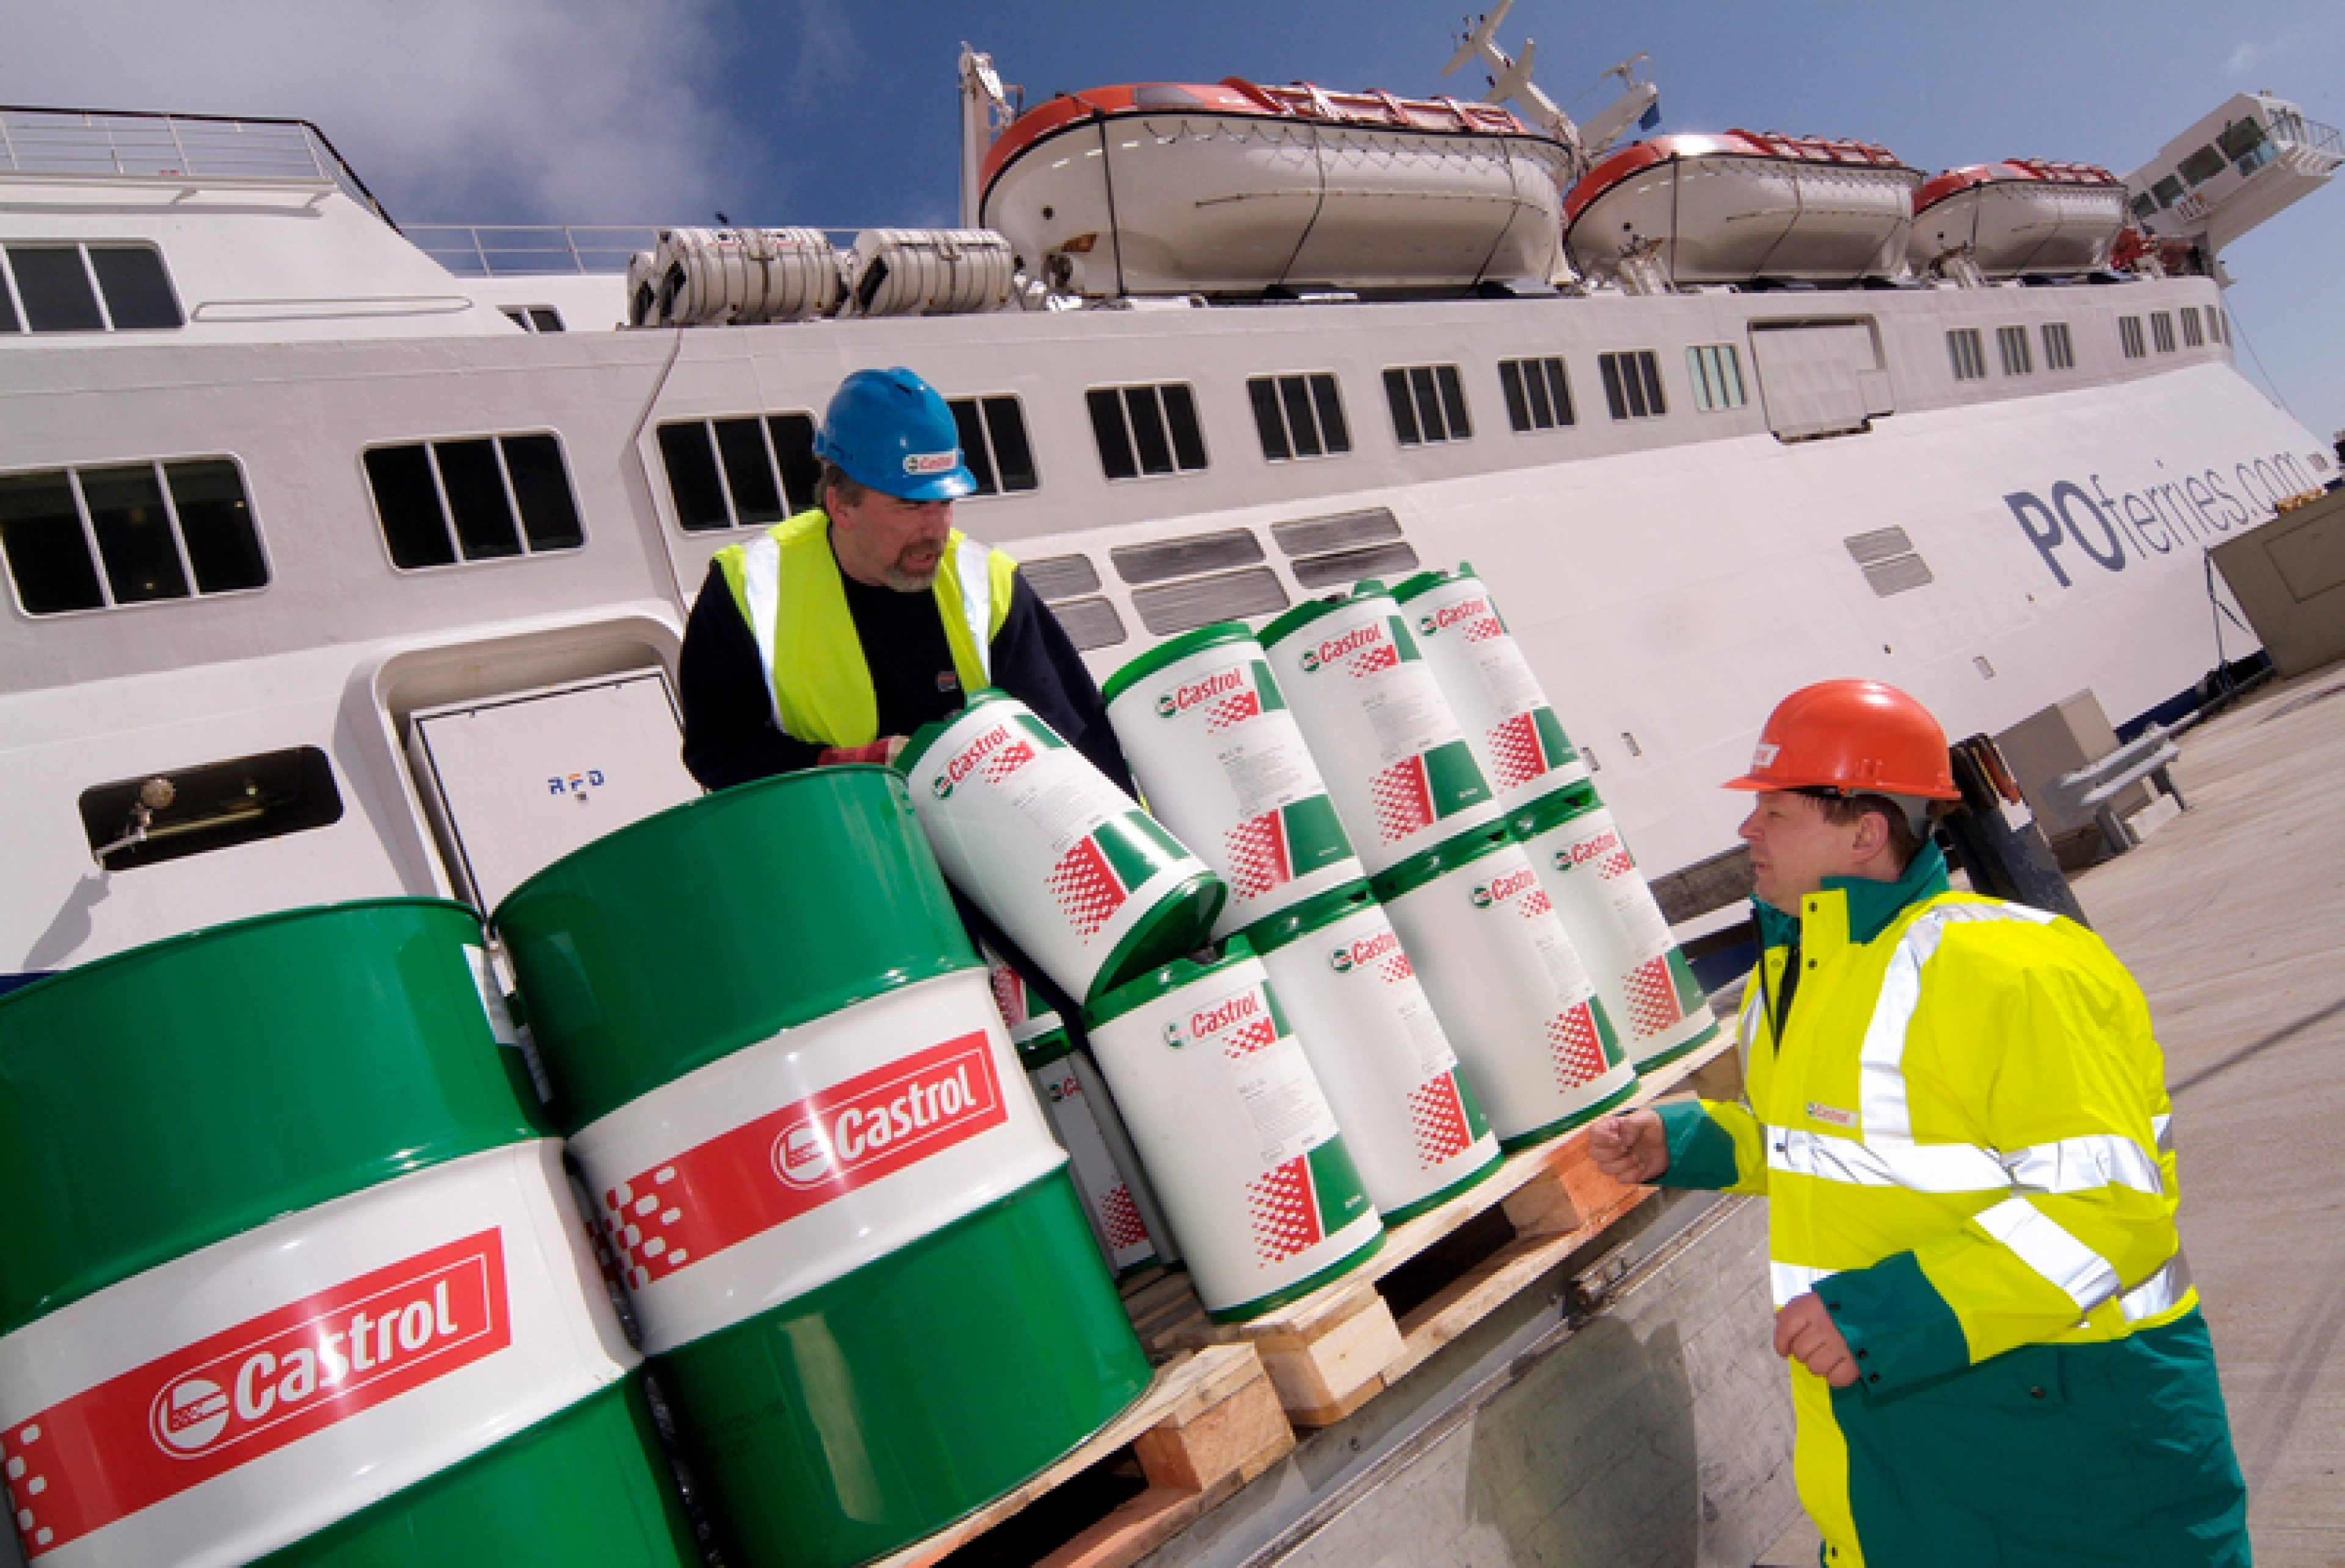 Castrol Marine truck delivers barrels to a P&O ferry in Dover, UK